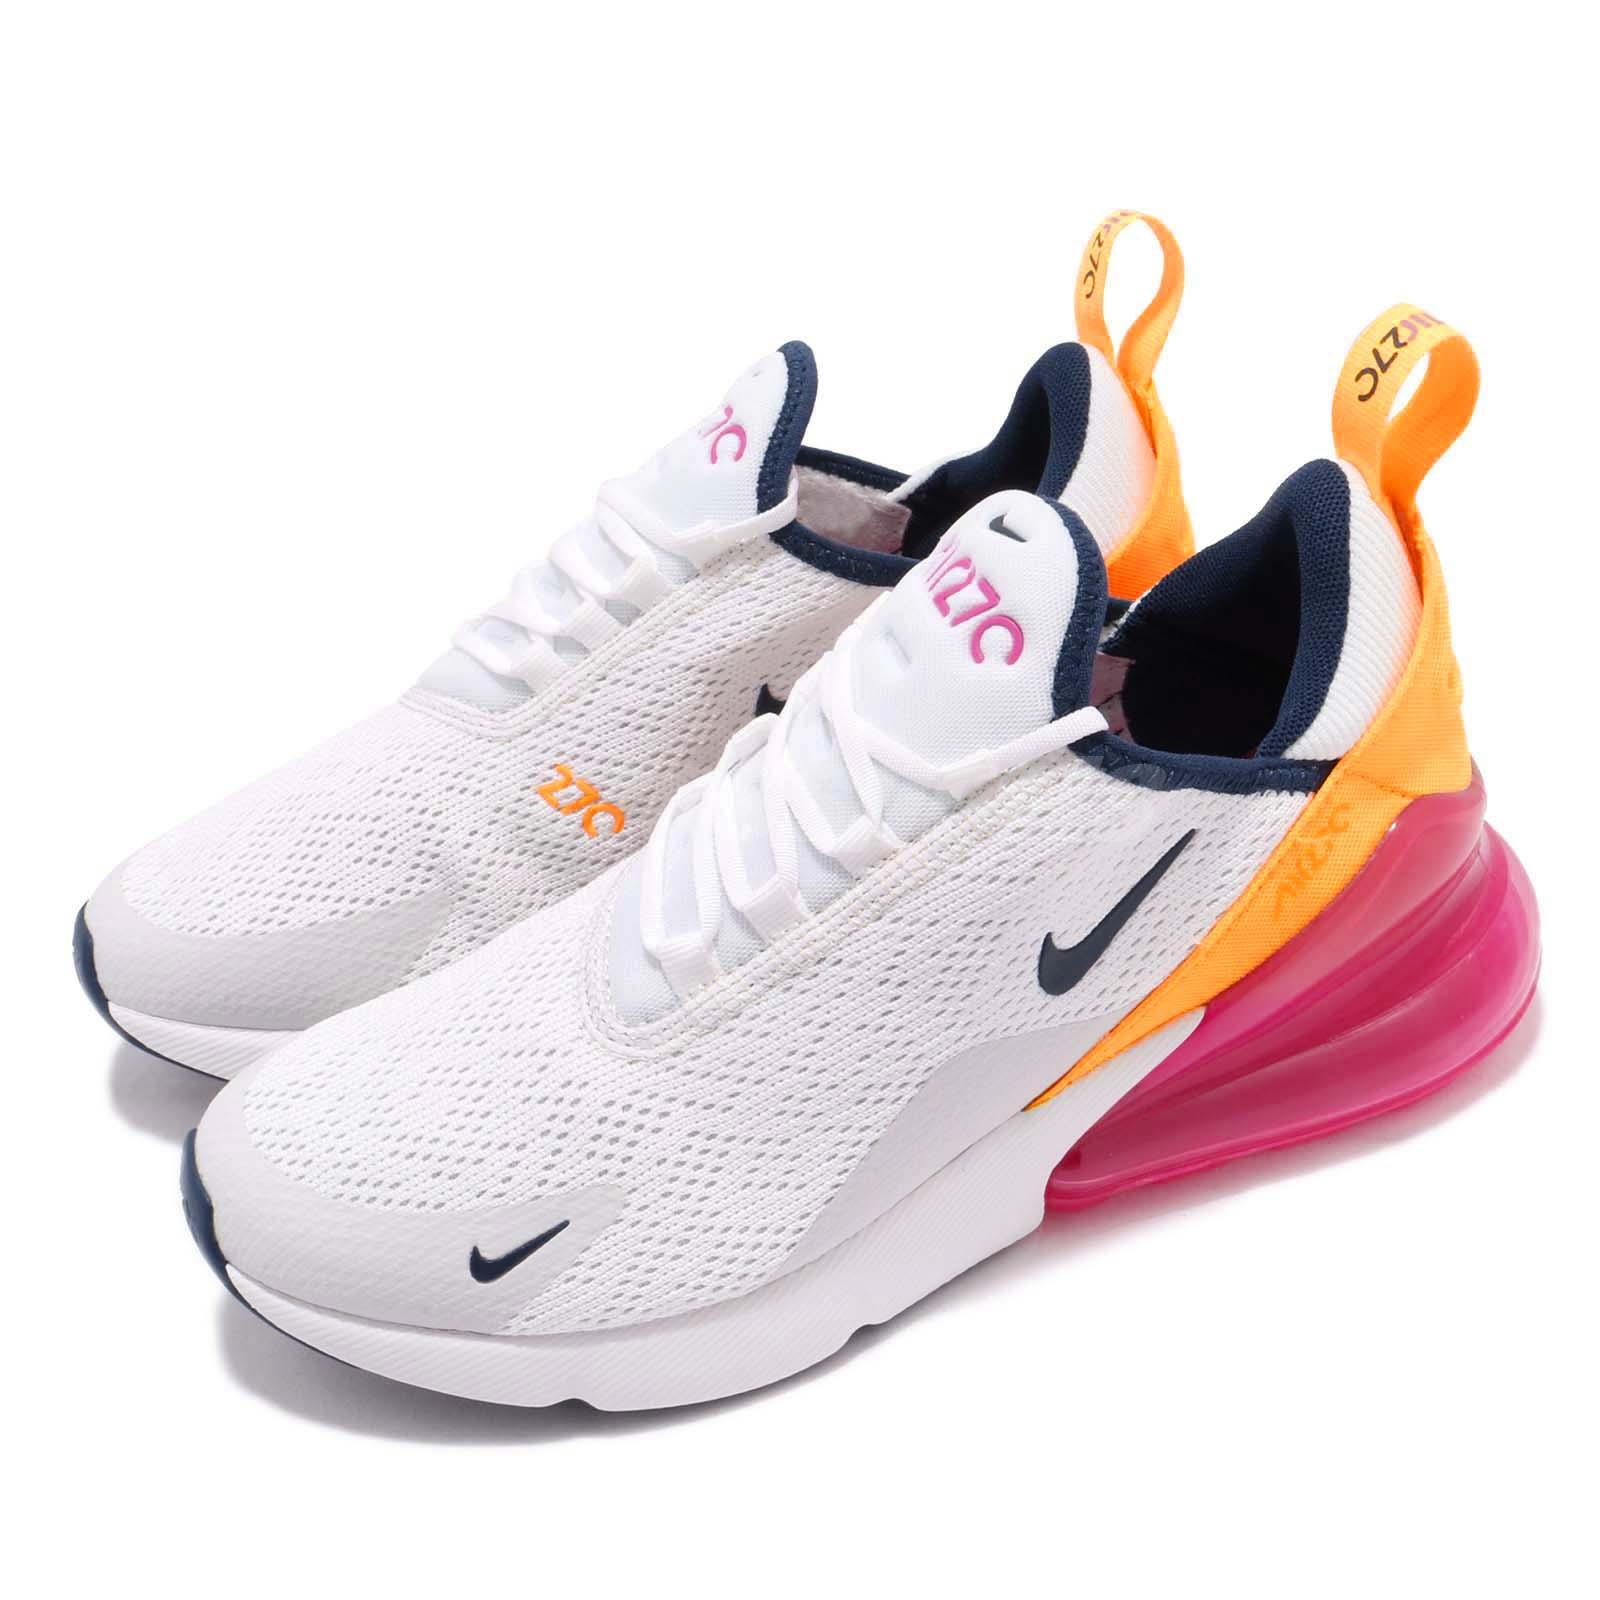 new product c1f1f 1ab51 Details about Nike Wmns Air Max 270 White Navy Pink Women Running Shoes  Sneakers AH6789-106